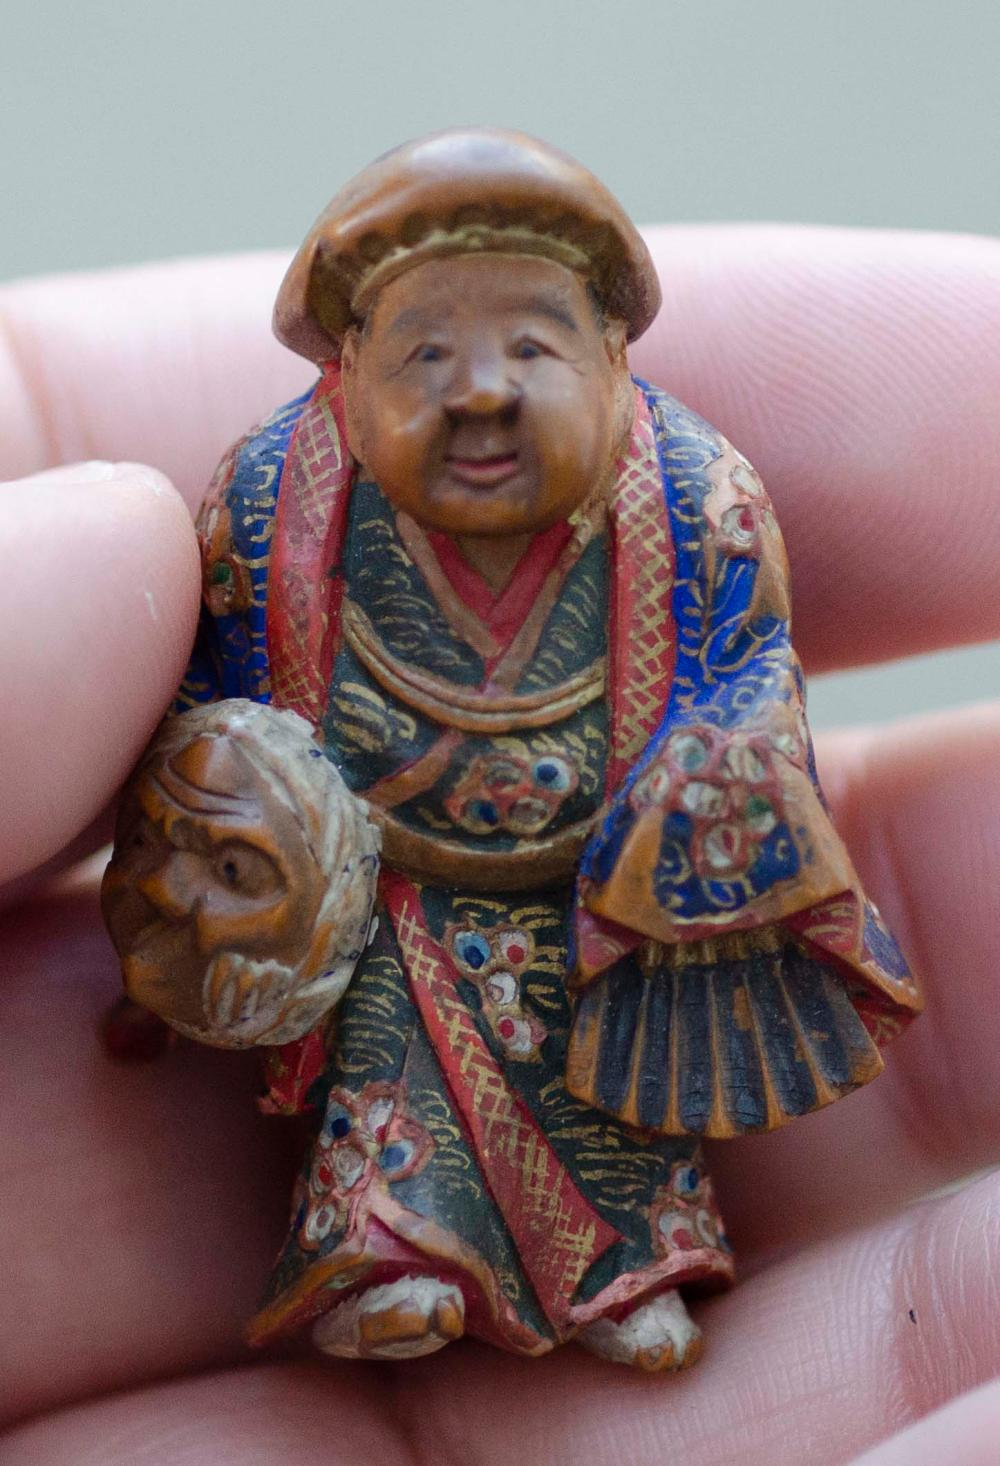 JAPANESE POLYCHROME WOOD NETSUKE By Nagamachi Shuzan. In the form of a figure carrying a mask and folded fan. Signed. Height 1.75